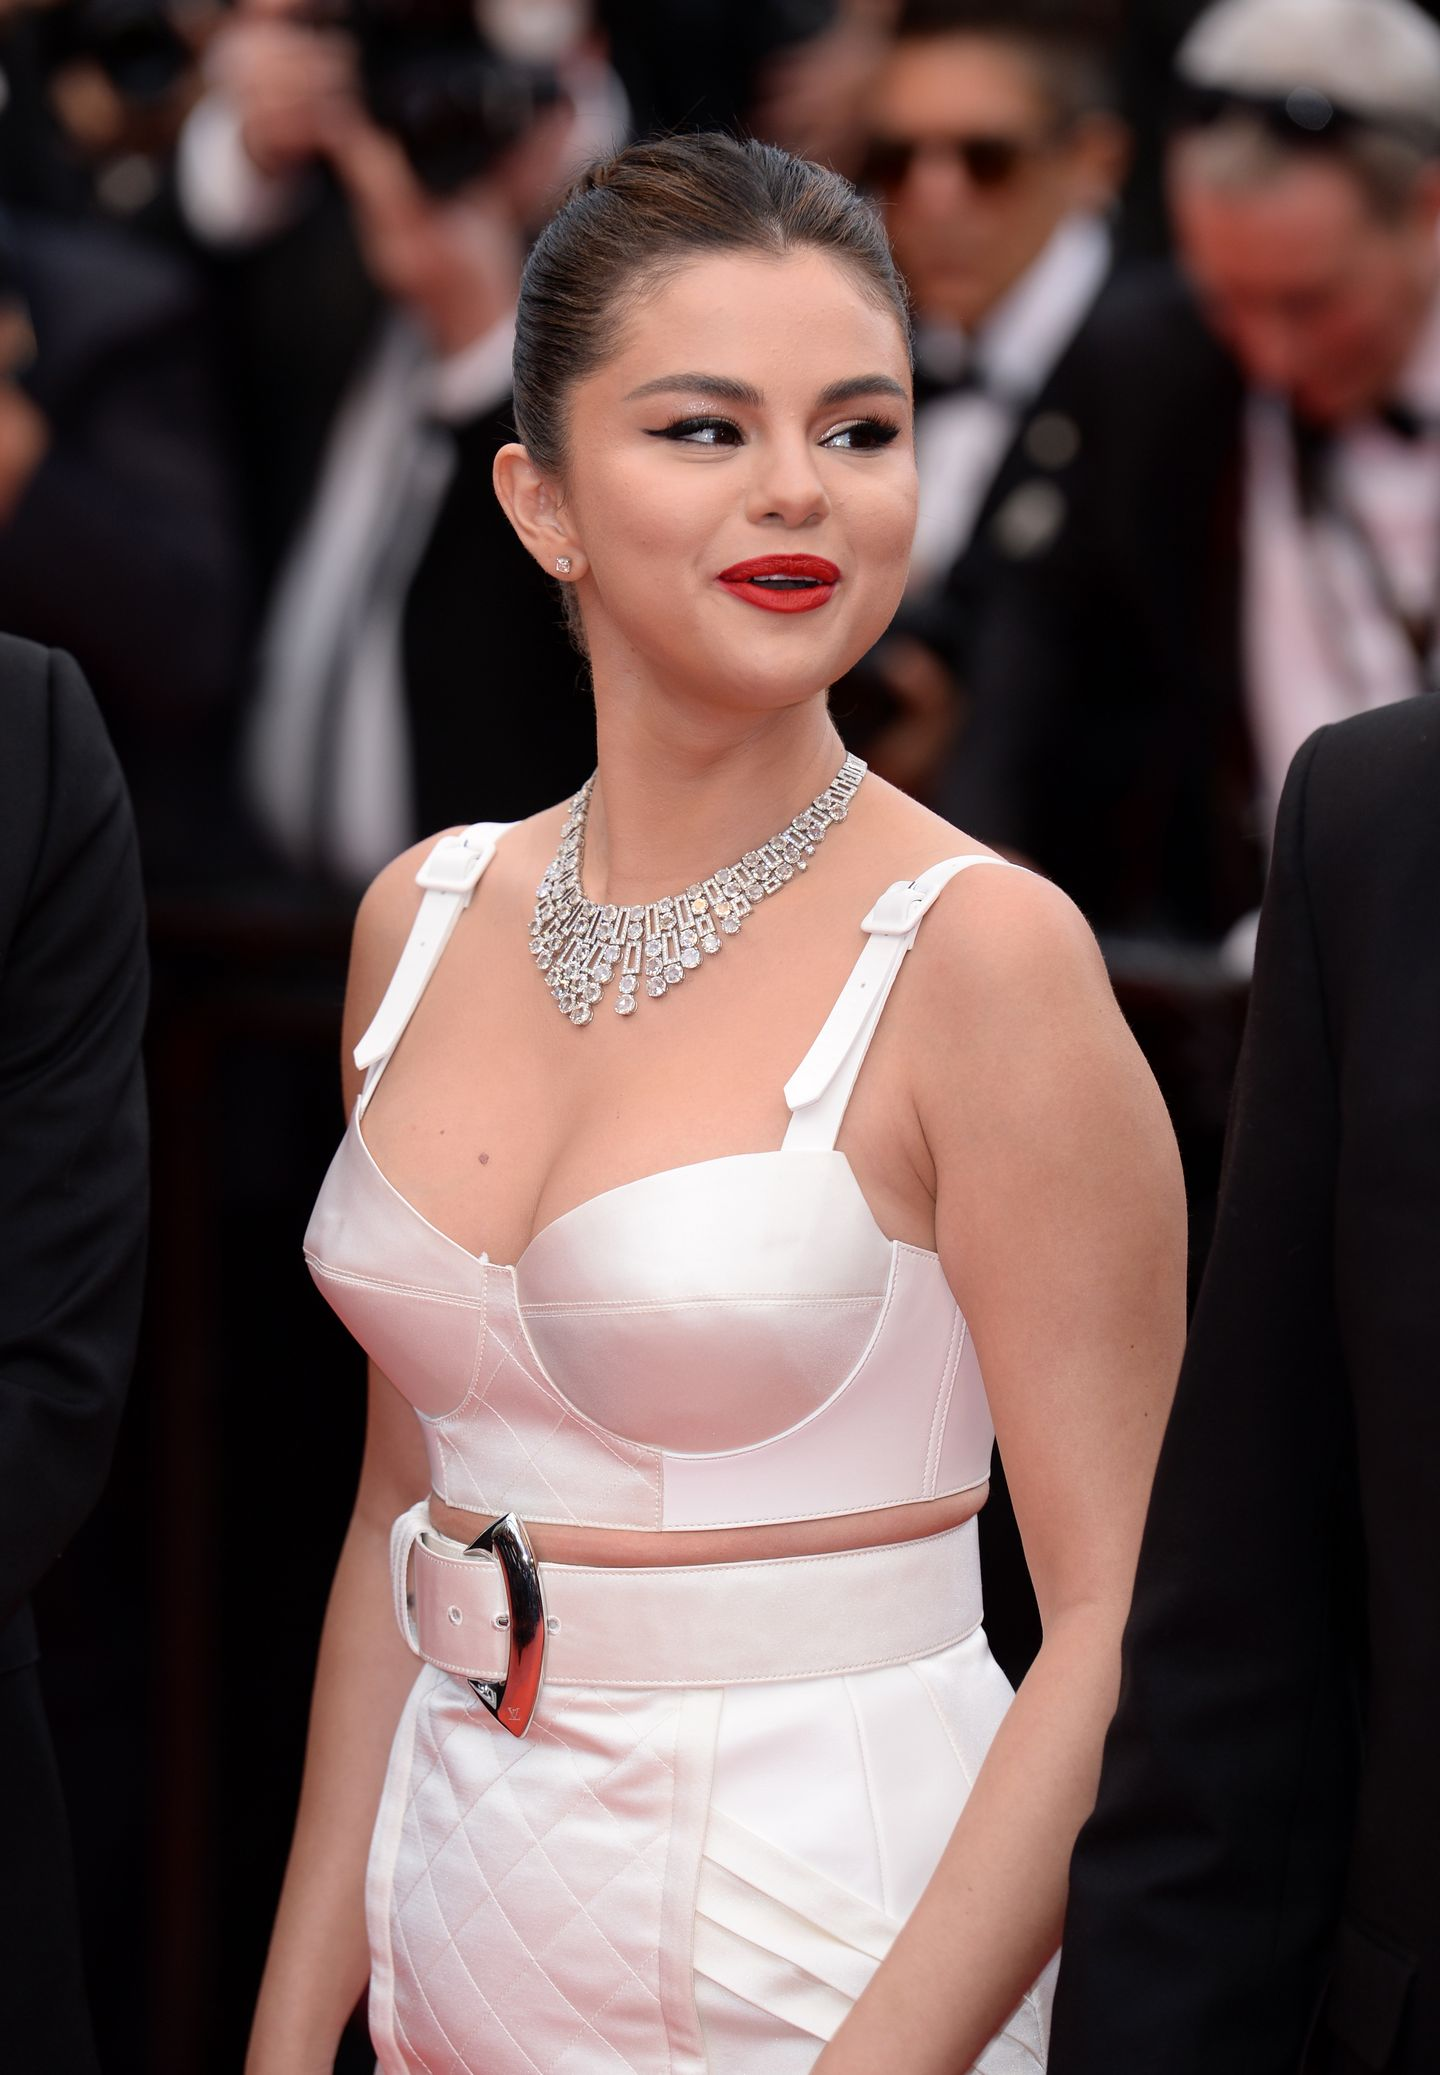 Selena Gomez at the 72nd Annual Cannes Film Festival in Cannes